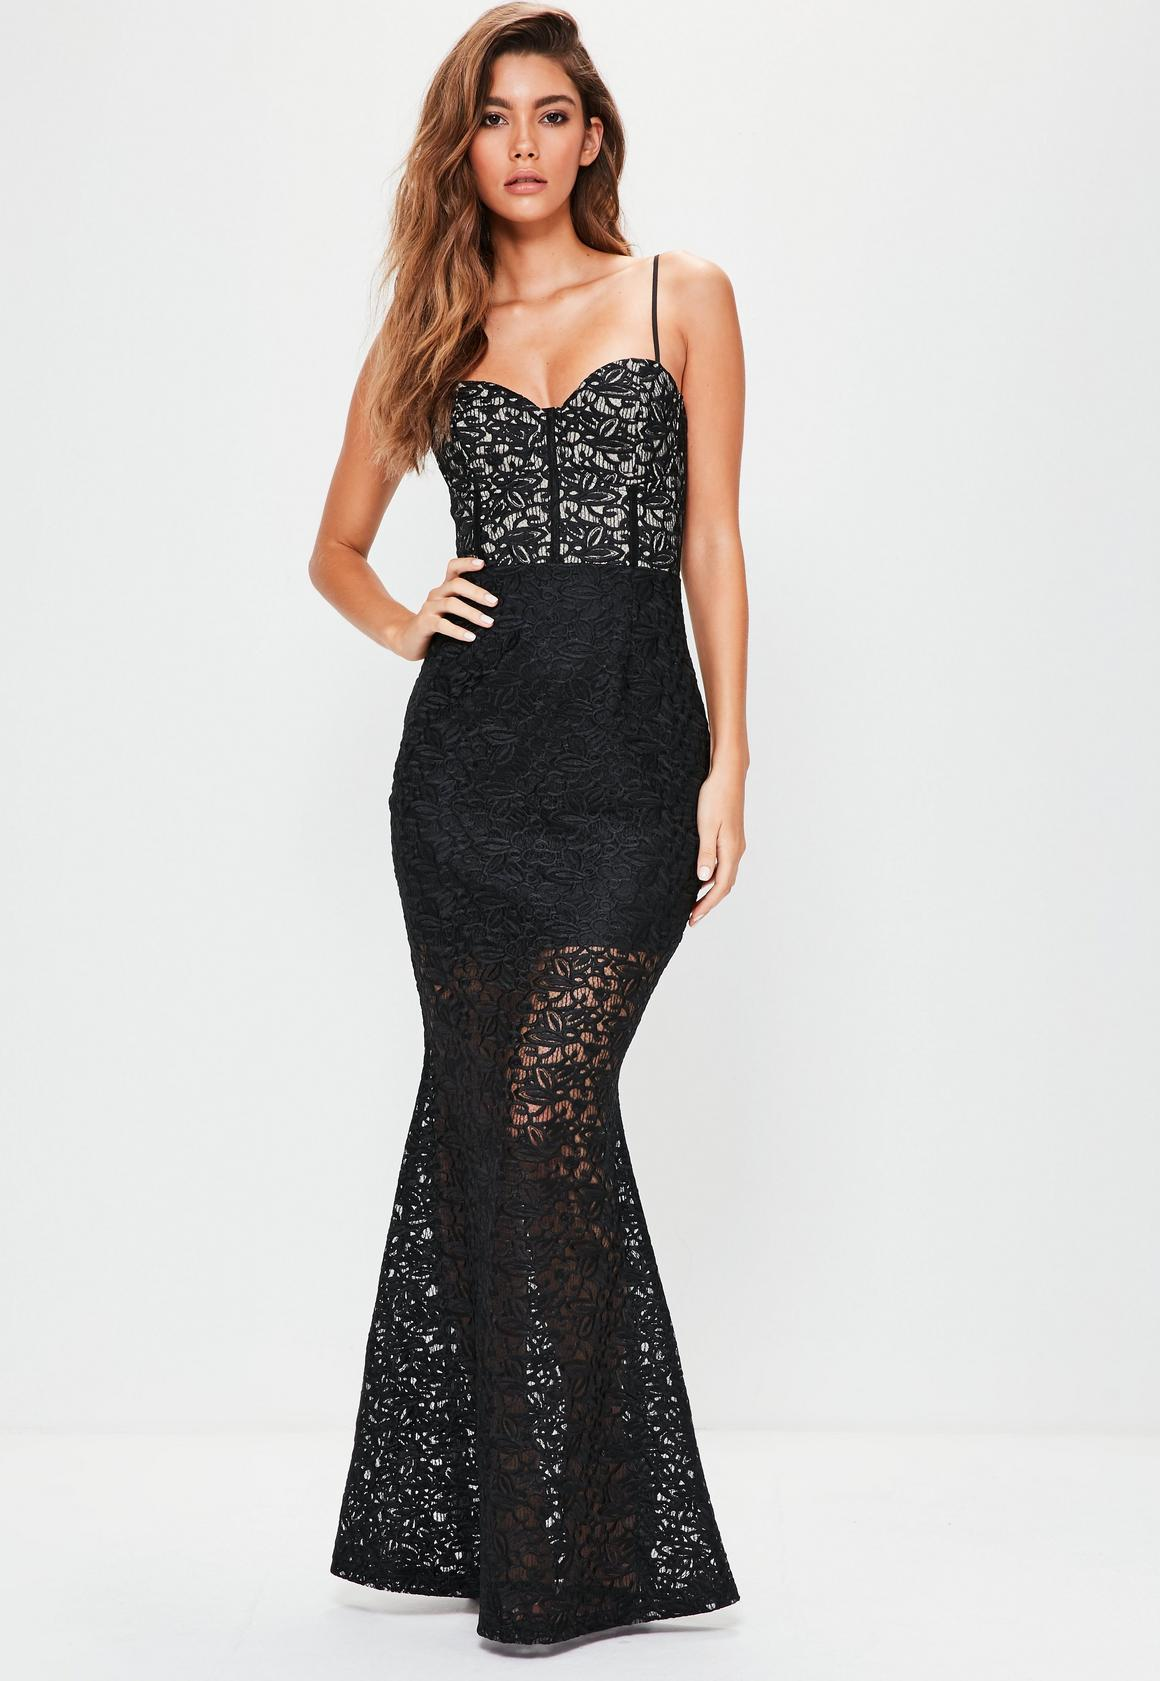 Black Strappy Bust Cup Lace Maxi Dress | Missguided